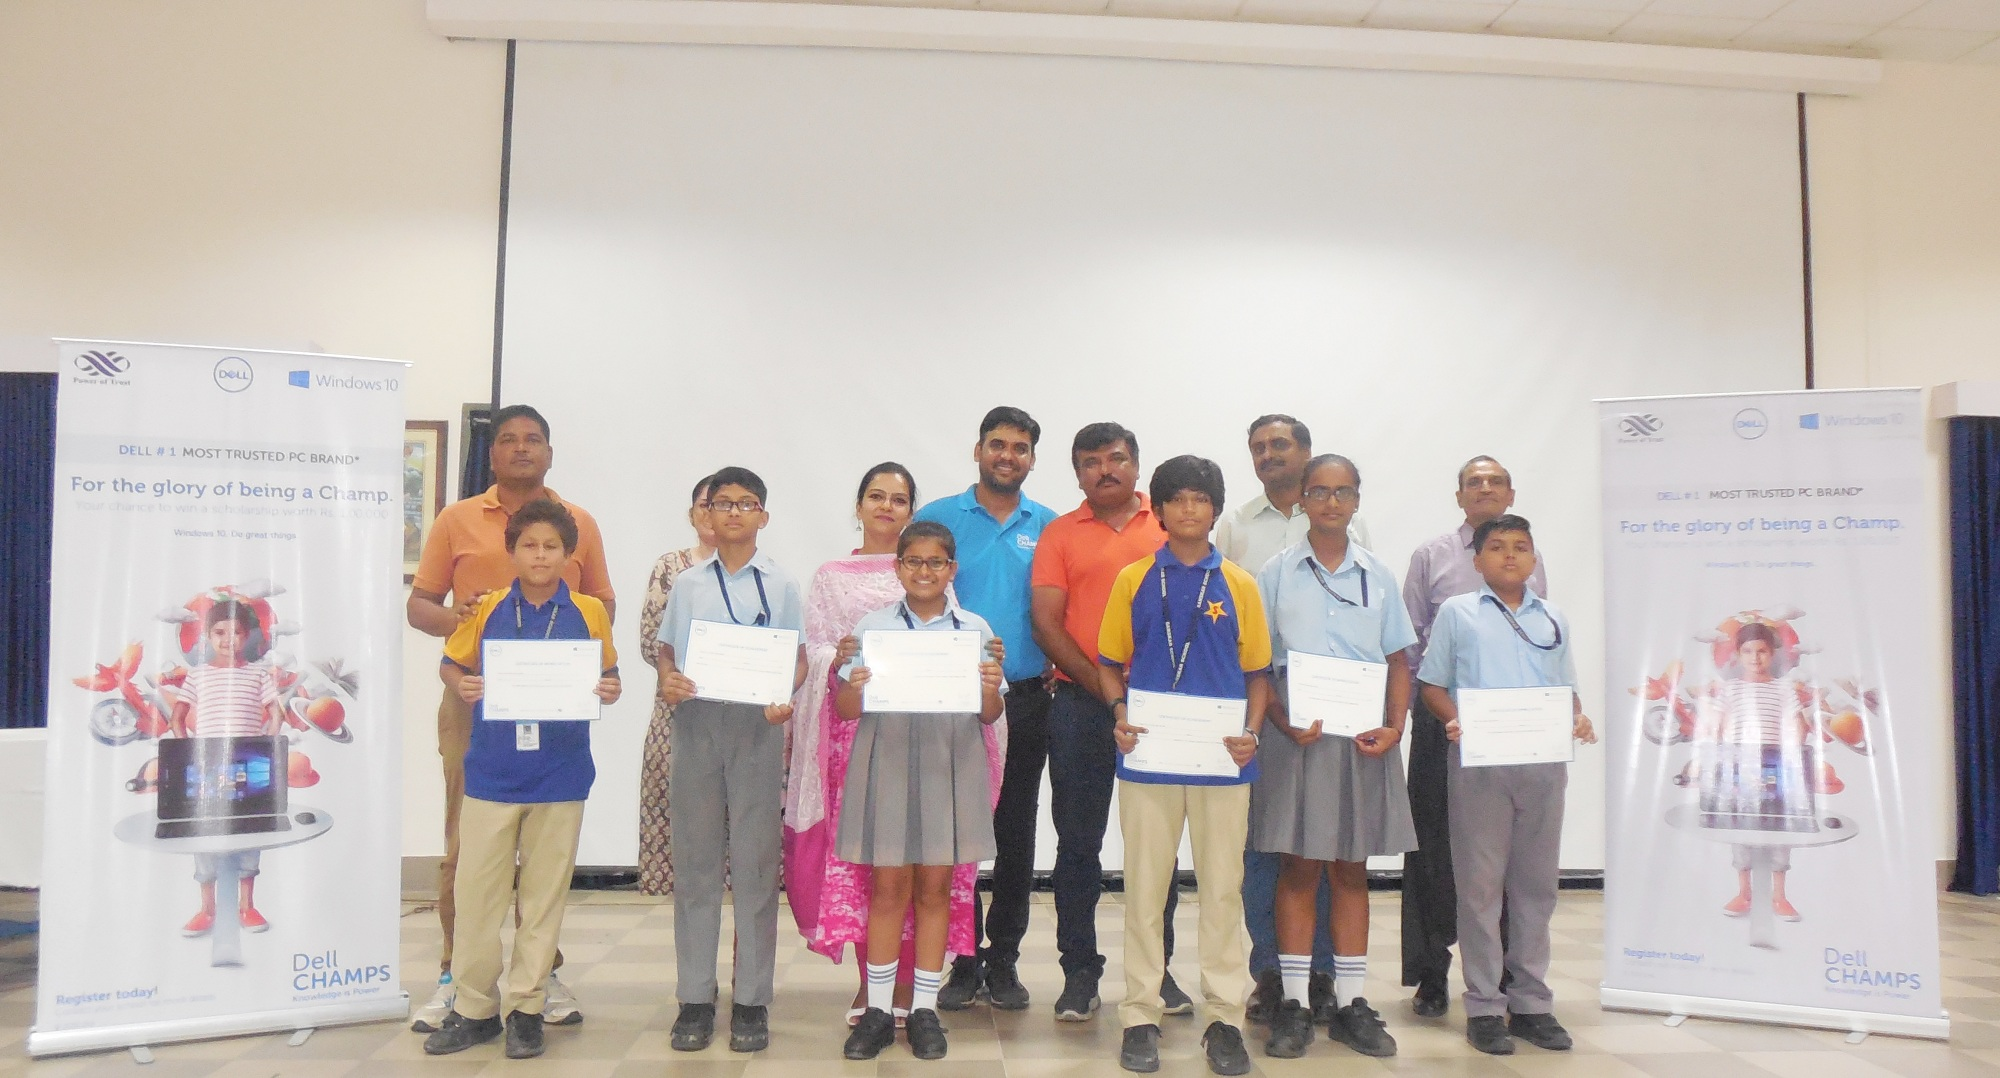 DELL Champs 2018 hosted at Sanskar School